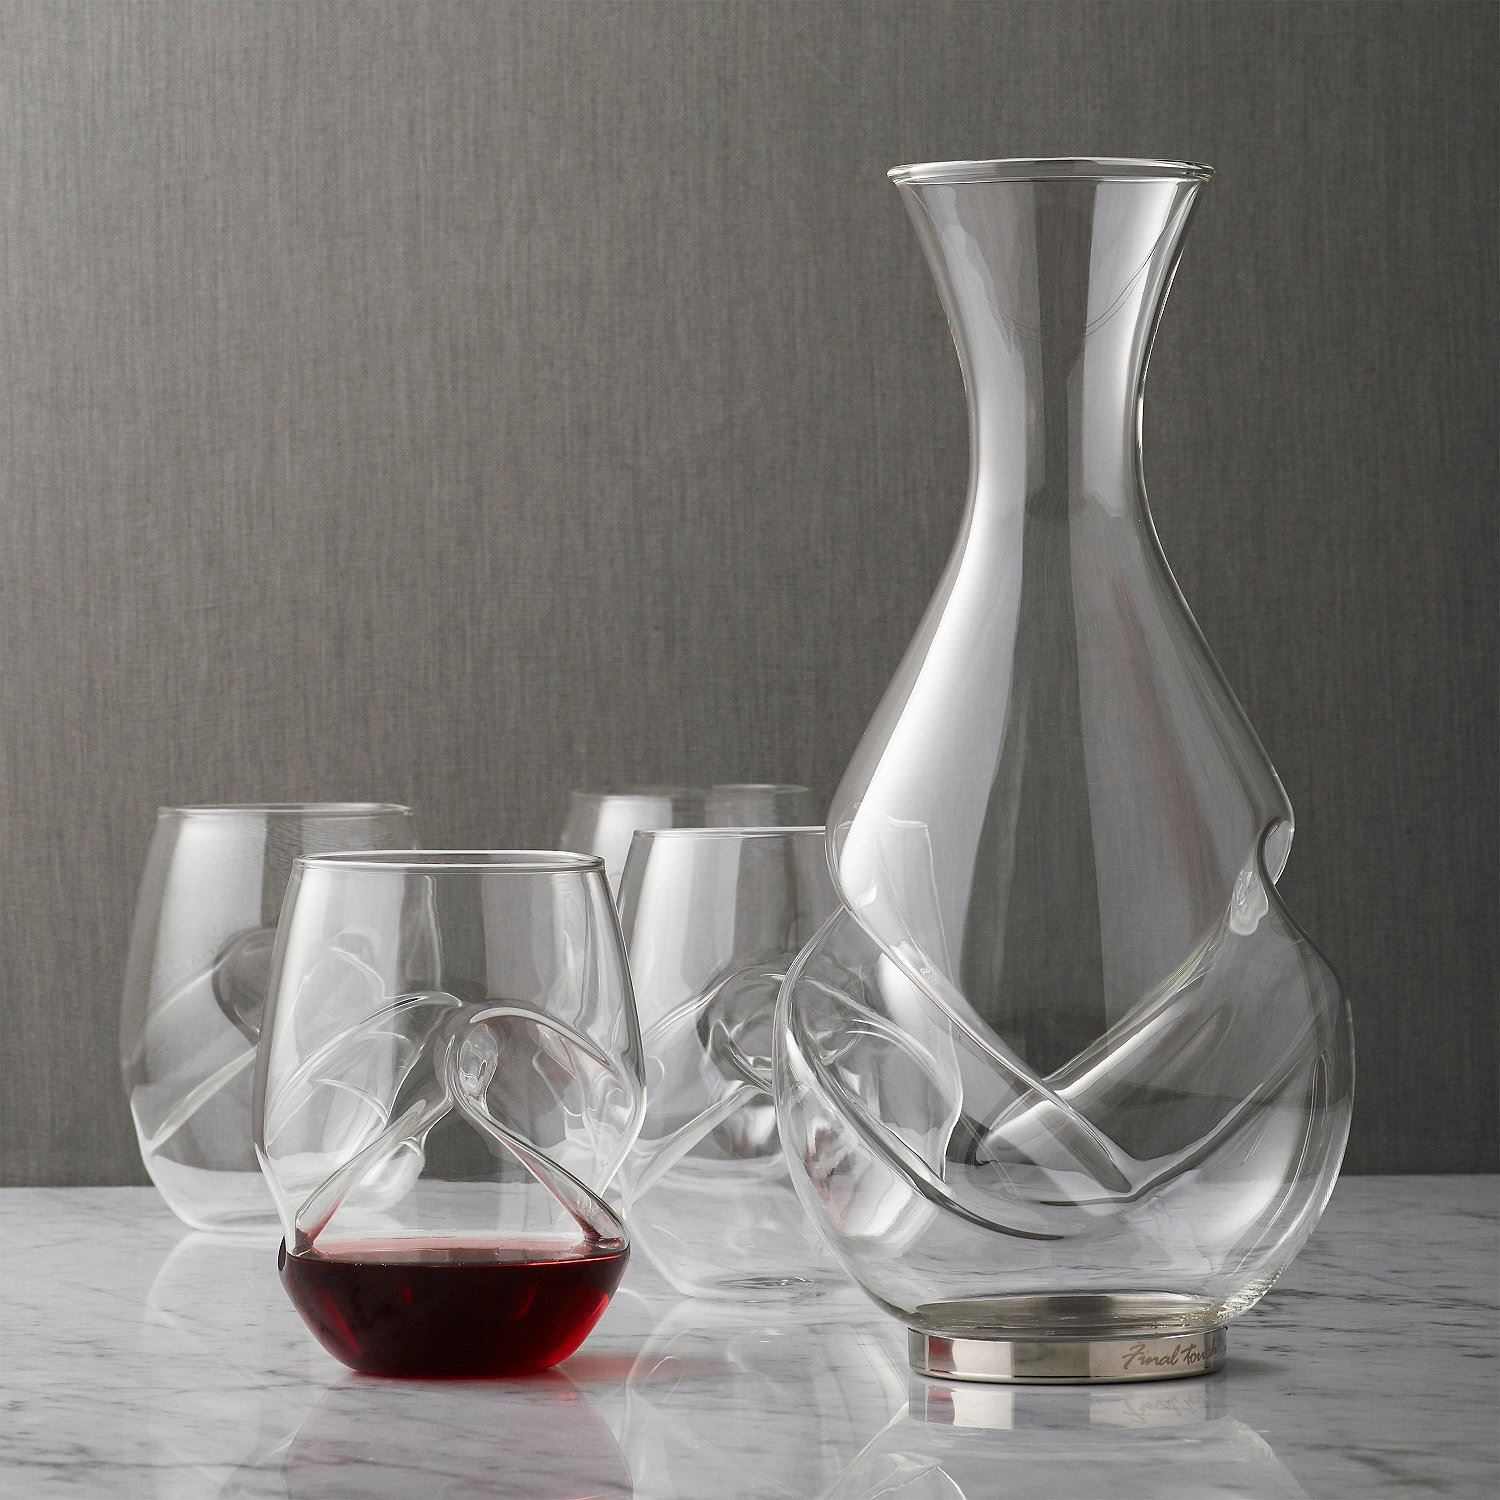 final touch conundrum glass aerator decanter carafe 375ml or 750ml ebay. Black Bedroom Furniture Sets. Home Design Ideas